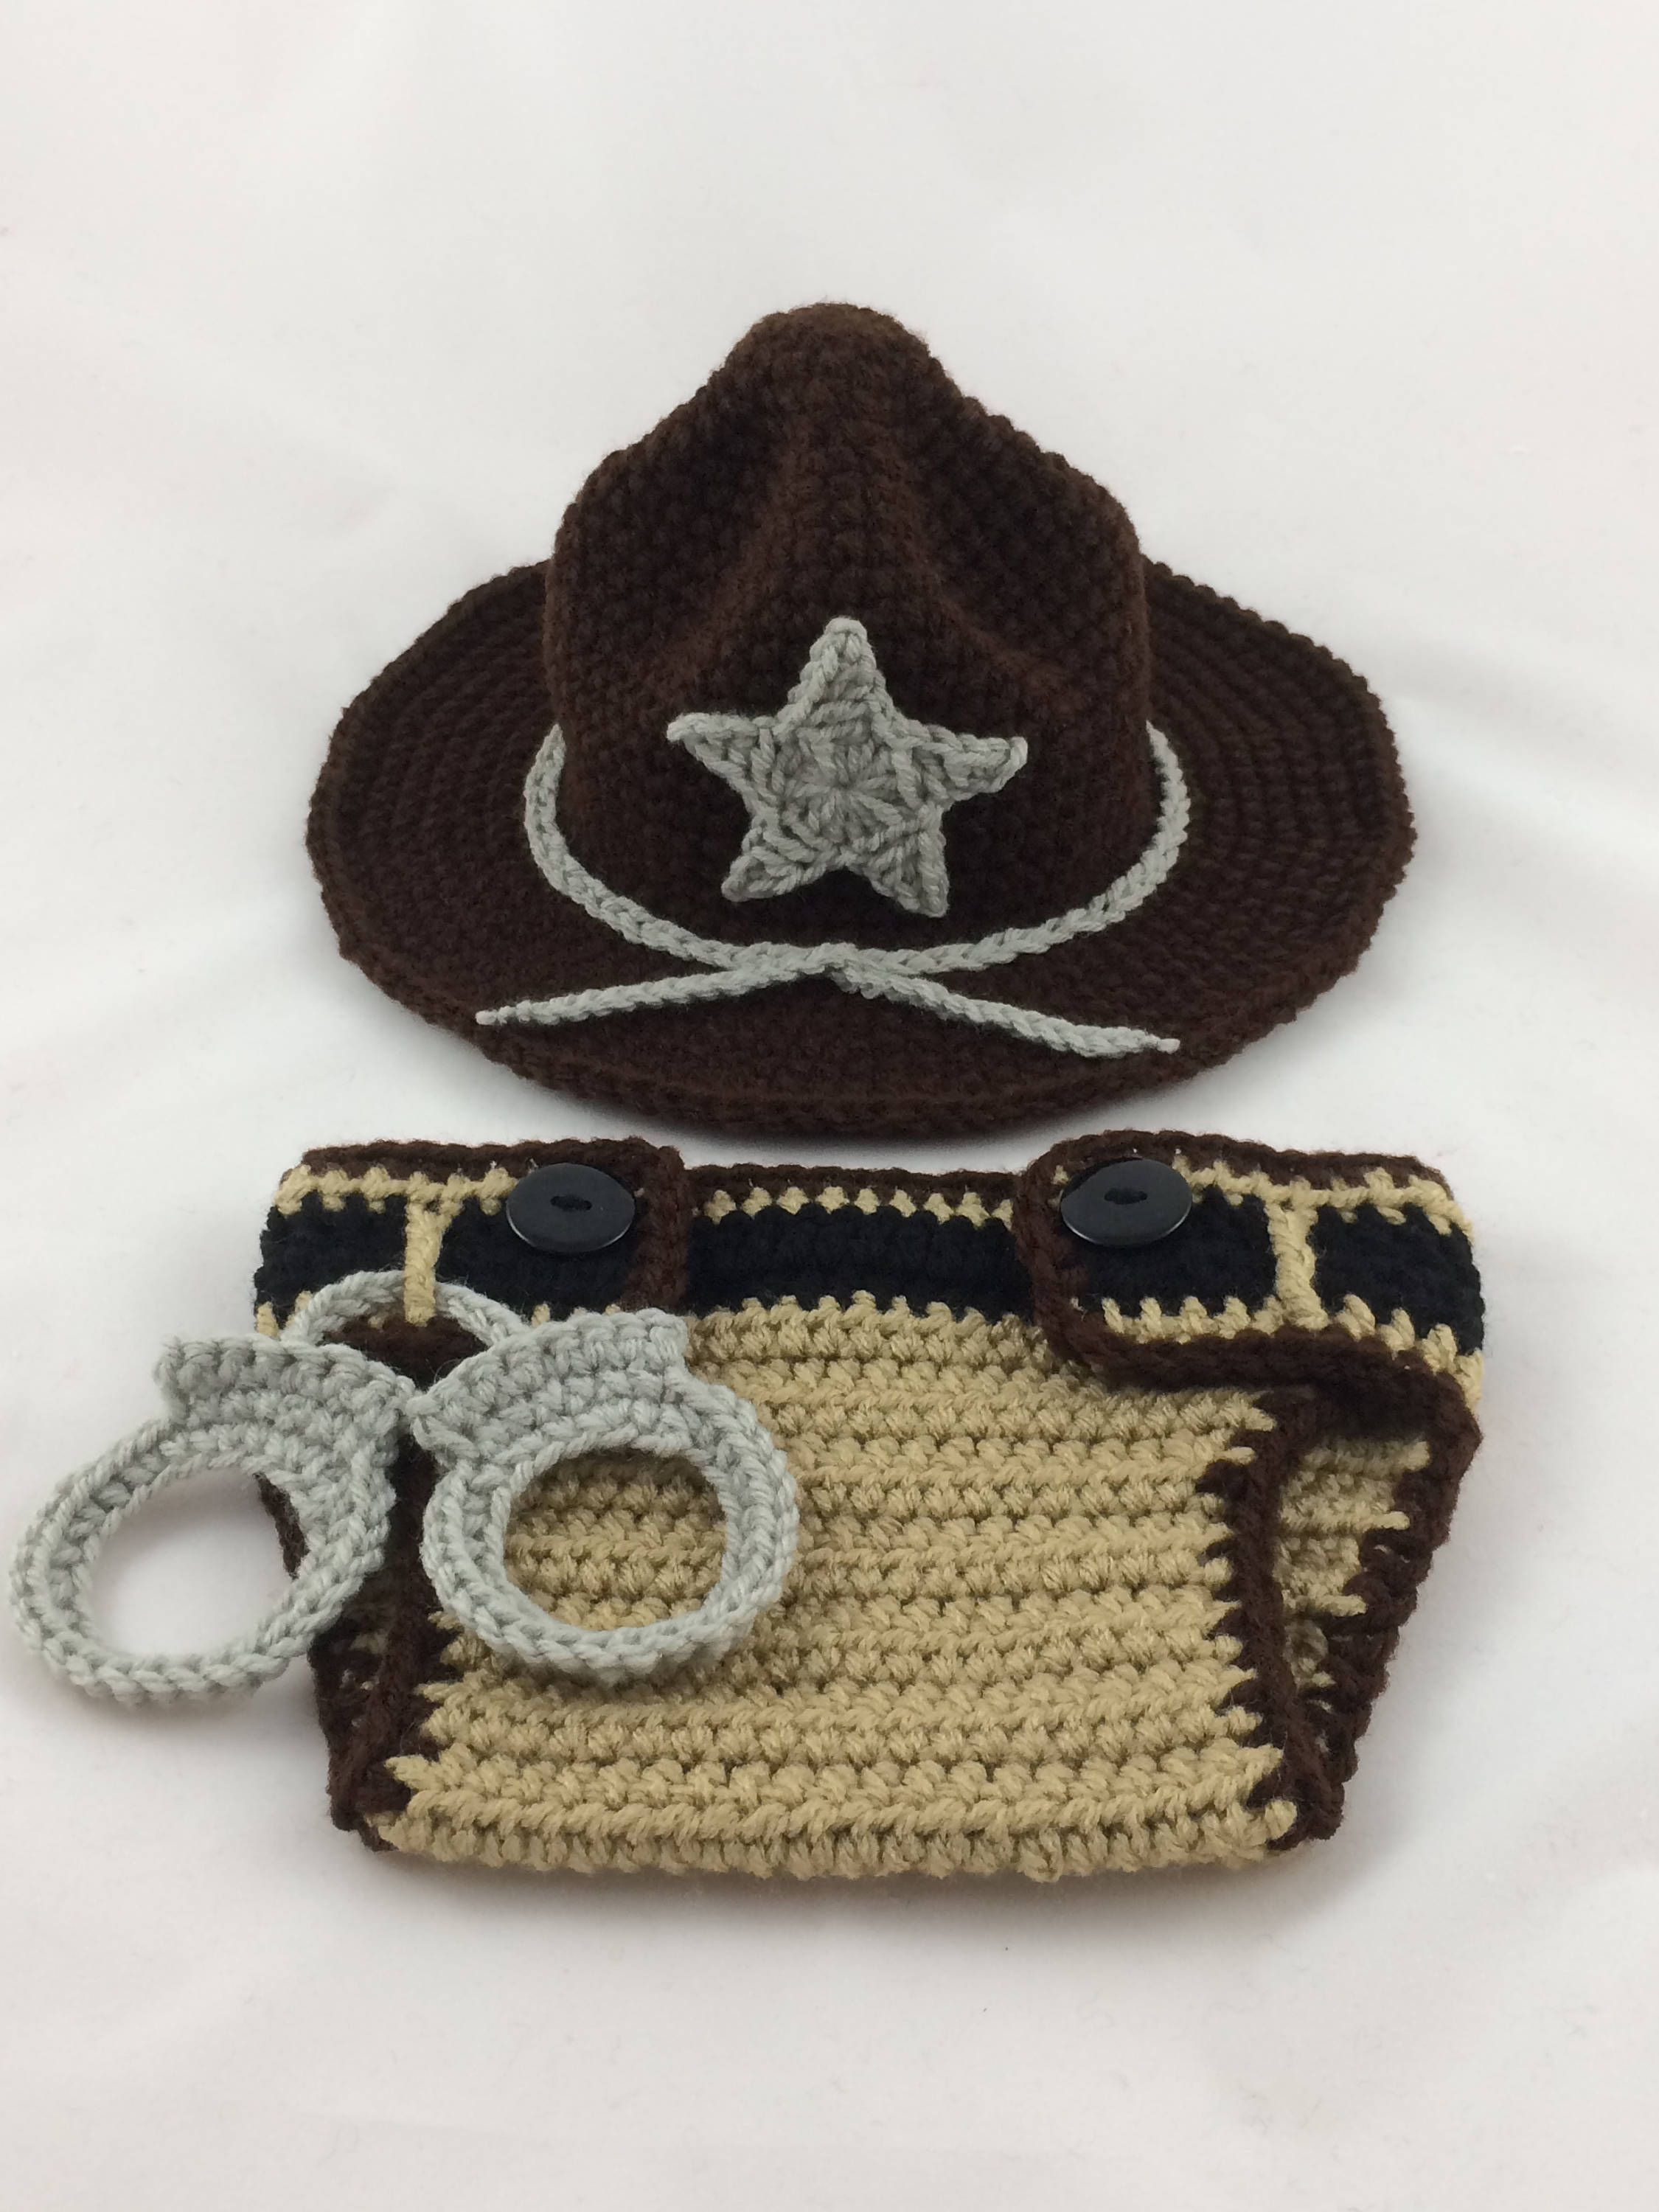 5b2d7acac2c Deputy Sheriff Baby Outfit - State Trooper - Police Officer Baby - Sheriff  Deputy - Baby Police Outfit - Park Ranger - Baby Police by  TimelessCrochetCraft ...